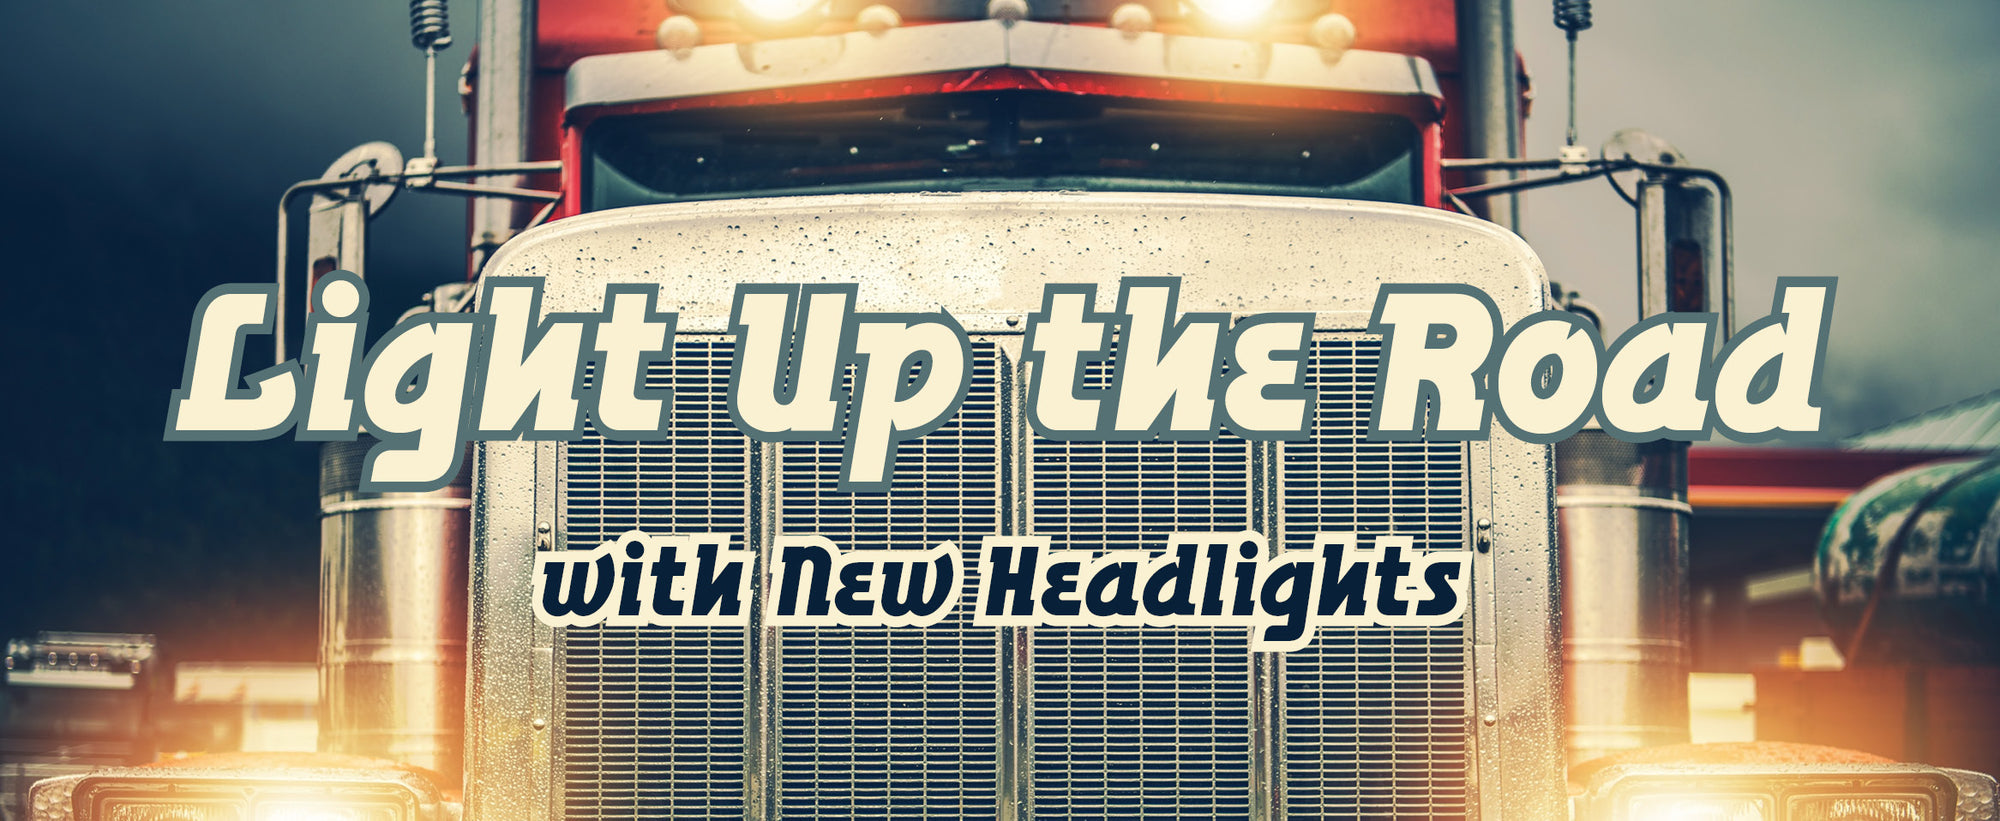 Light Up the Road with New Headlights